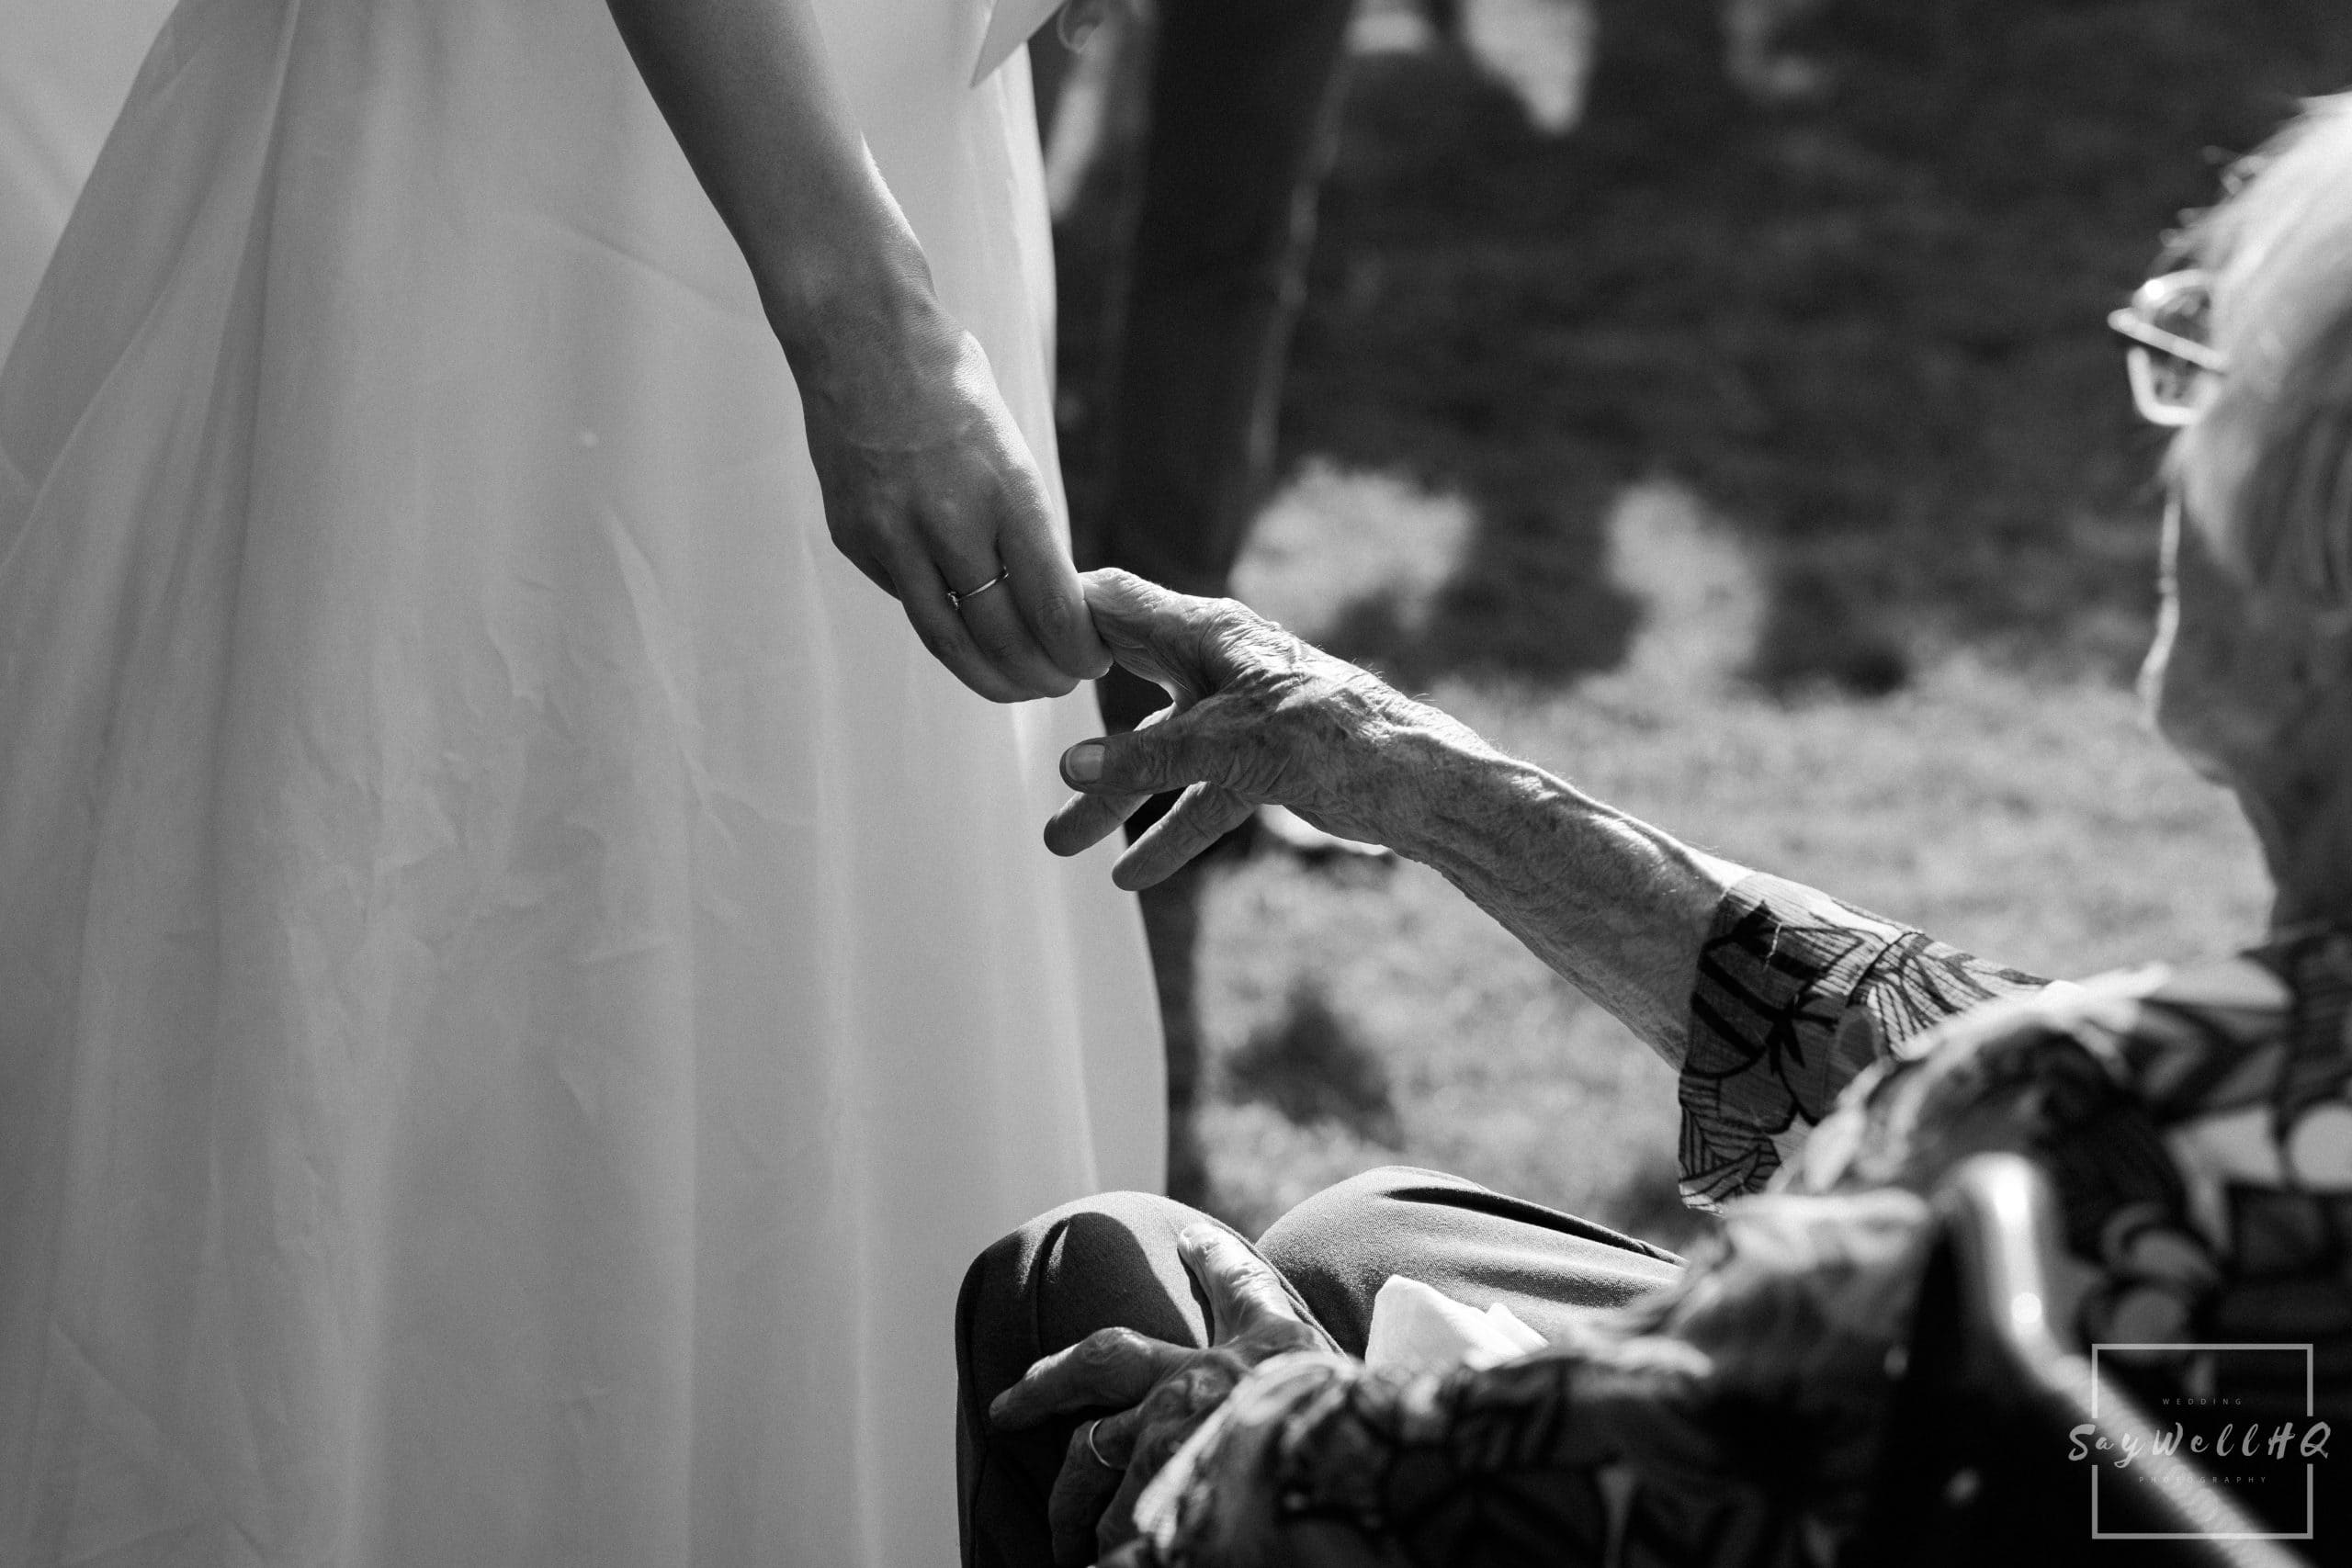 The bride holding hands with her grandma during the wedding speeches at a micro church wedding in 2020